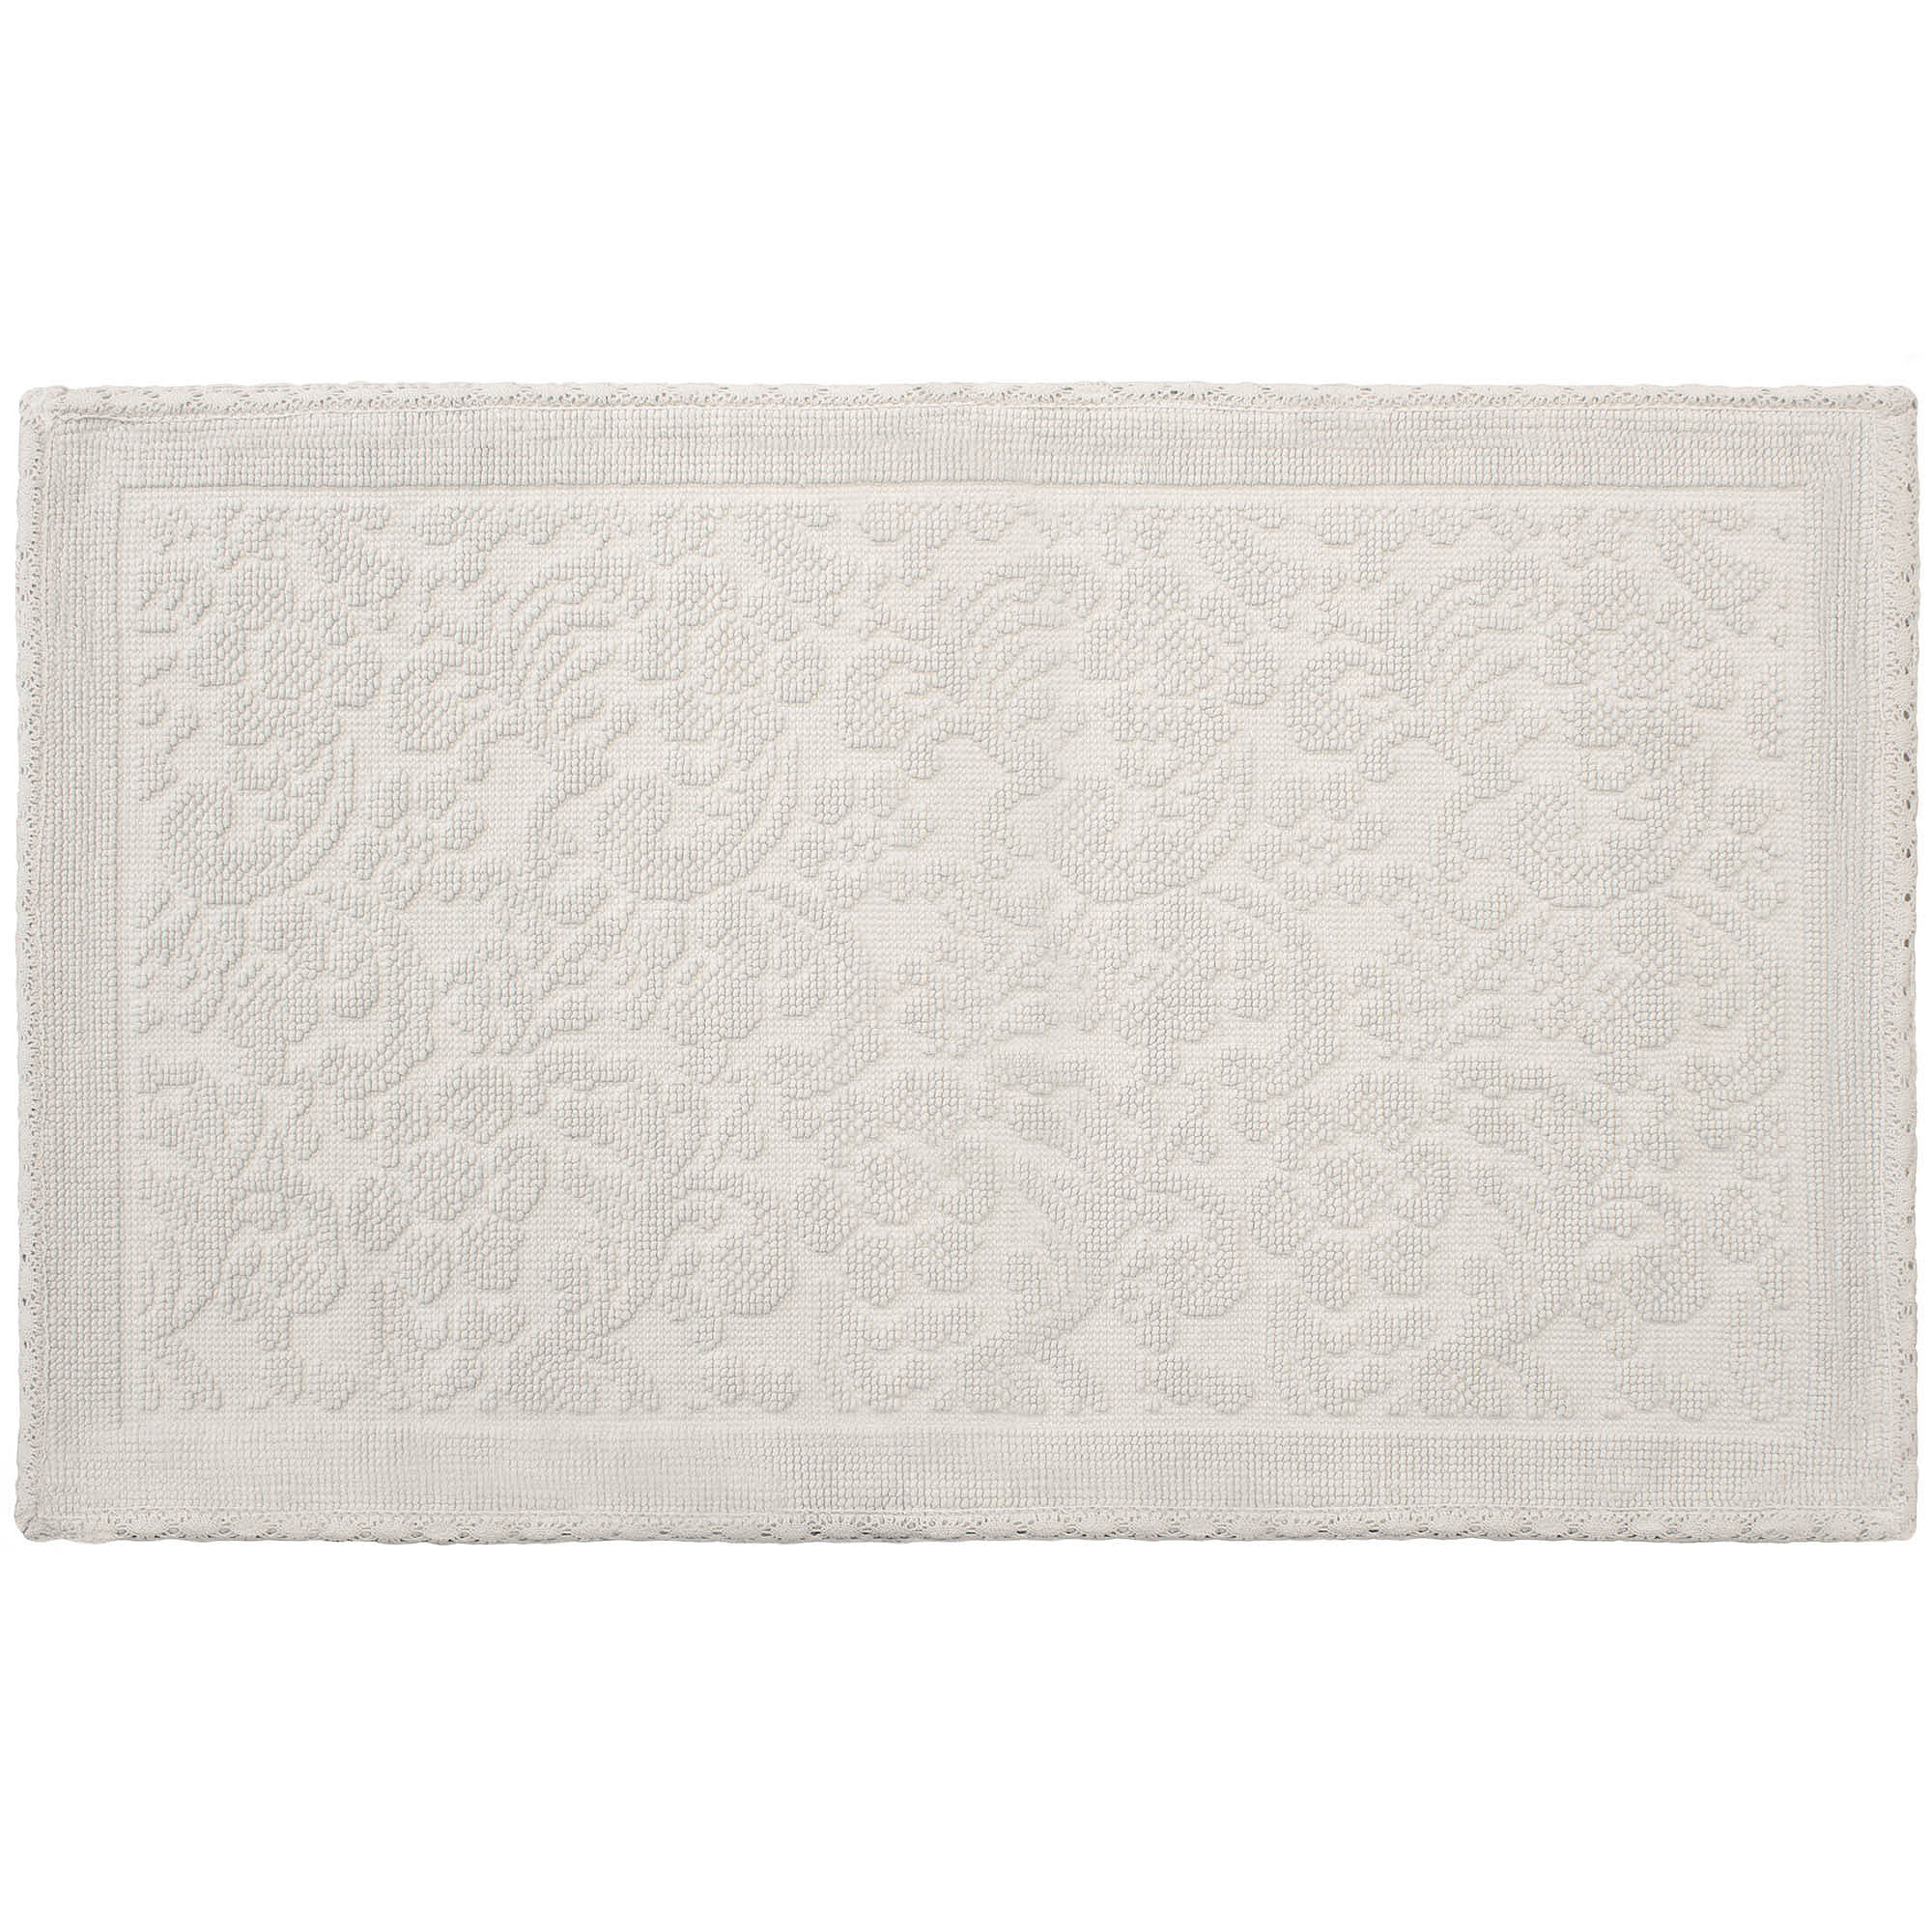 Turkish Cotton Flat Weave Bath Rug Collection